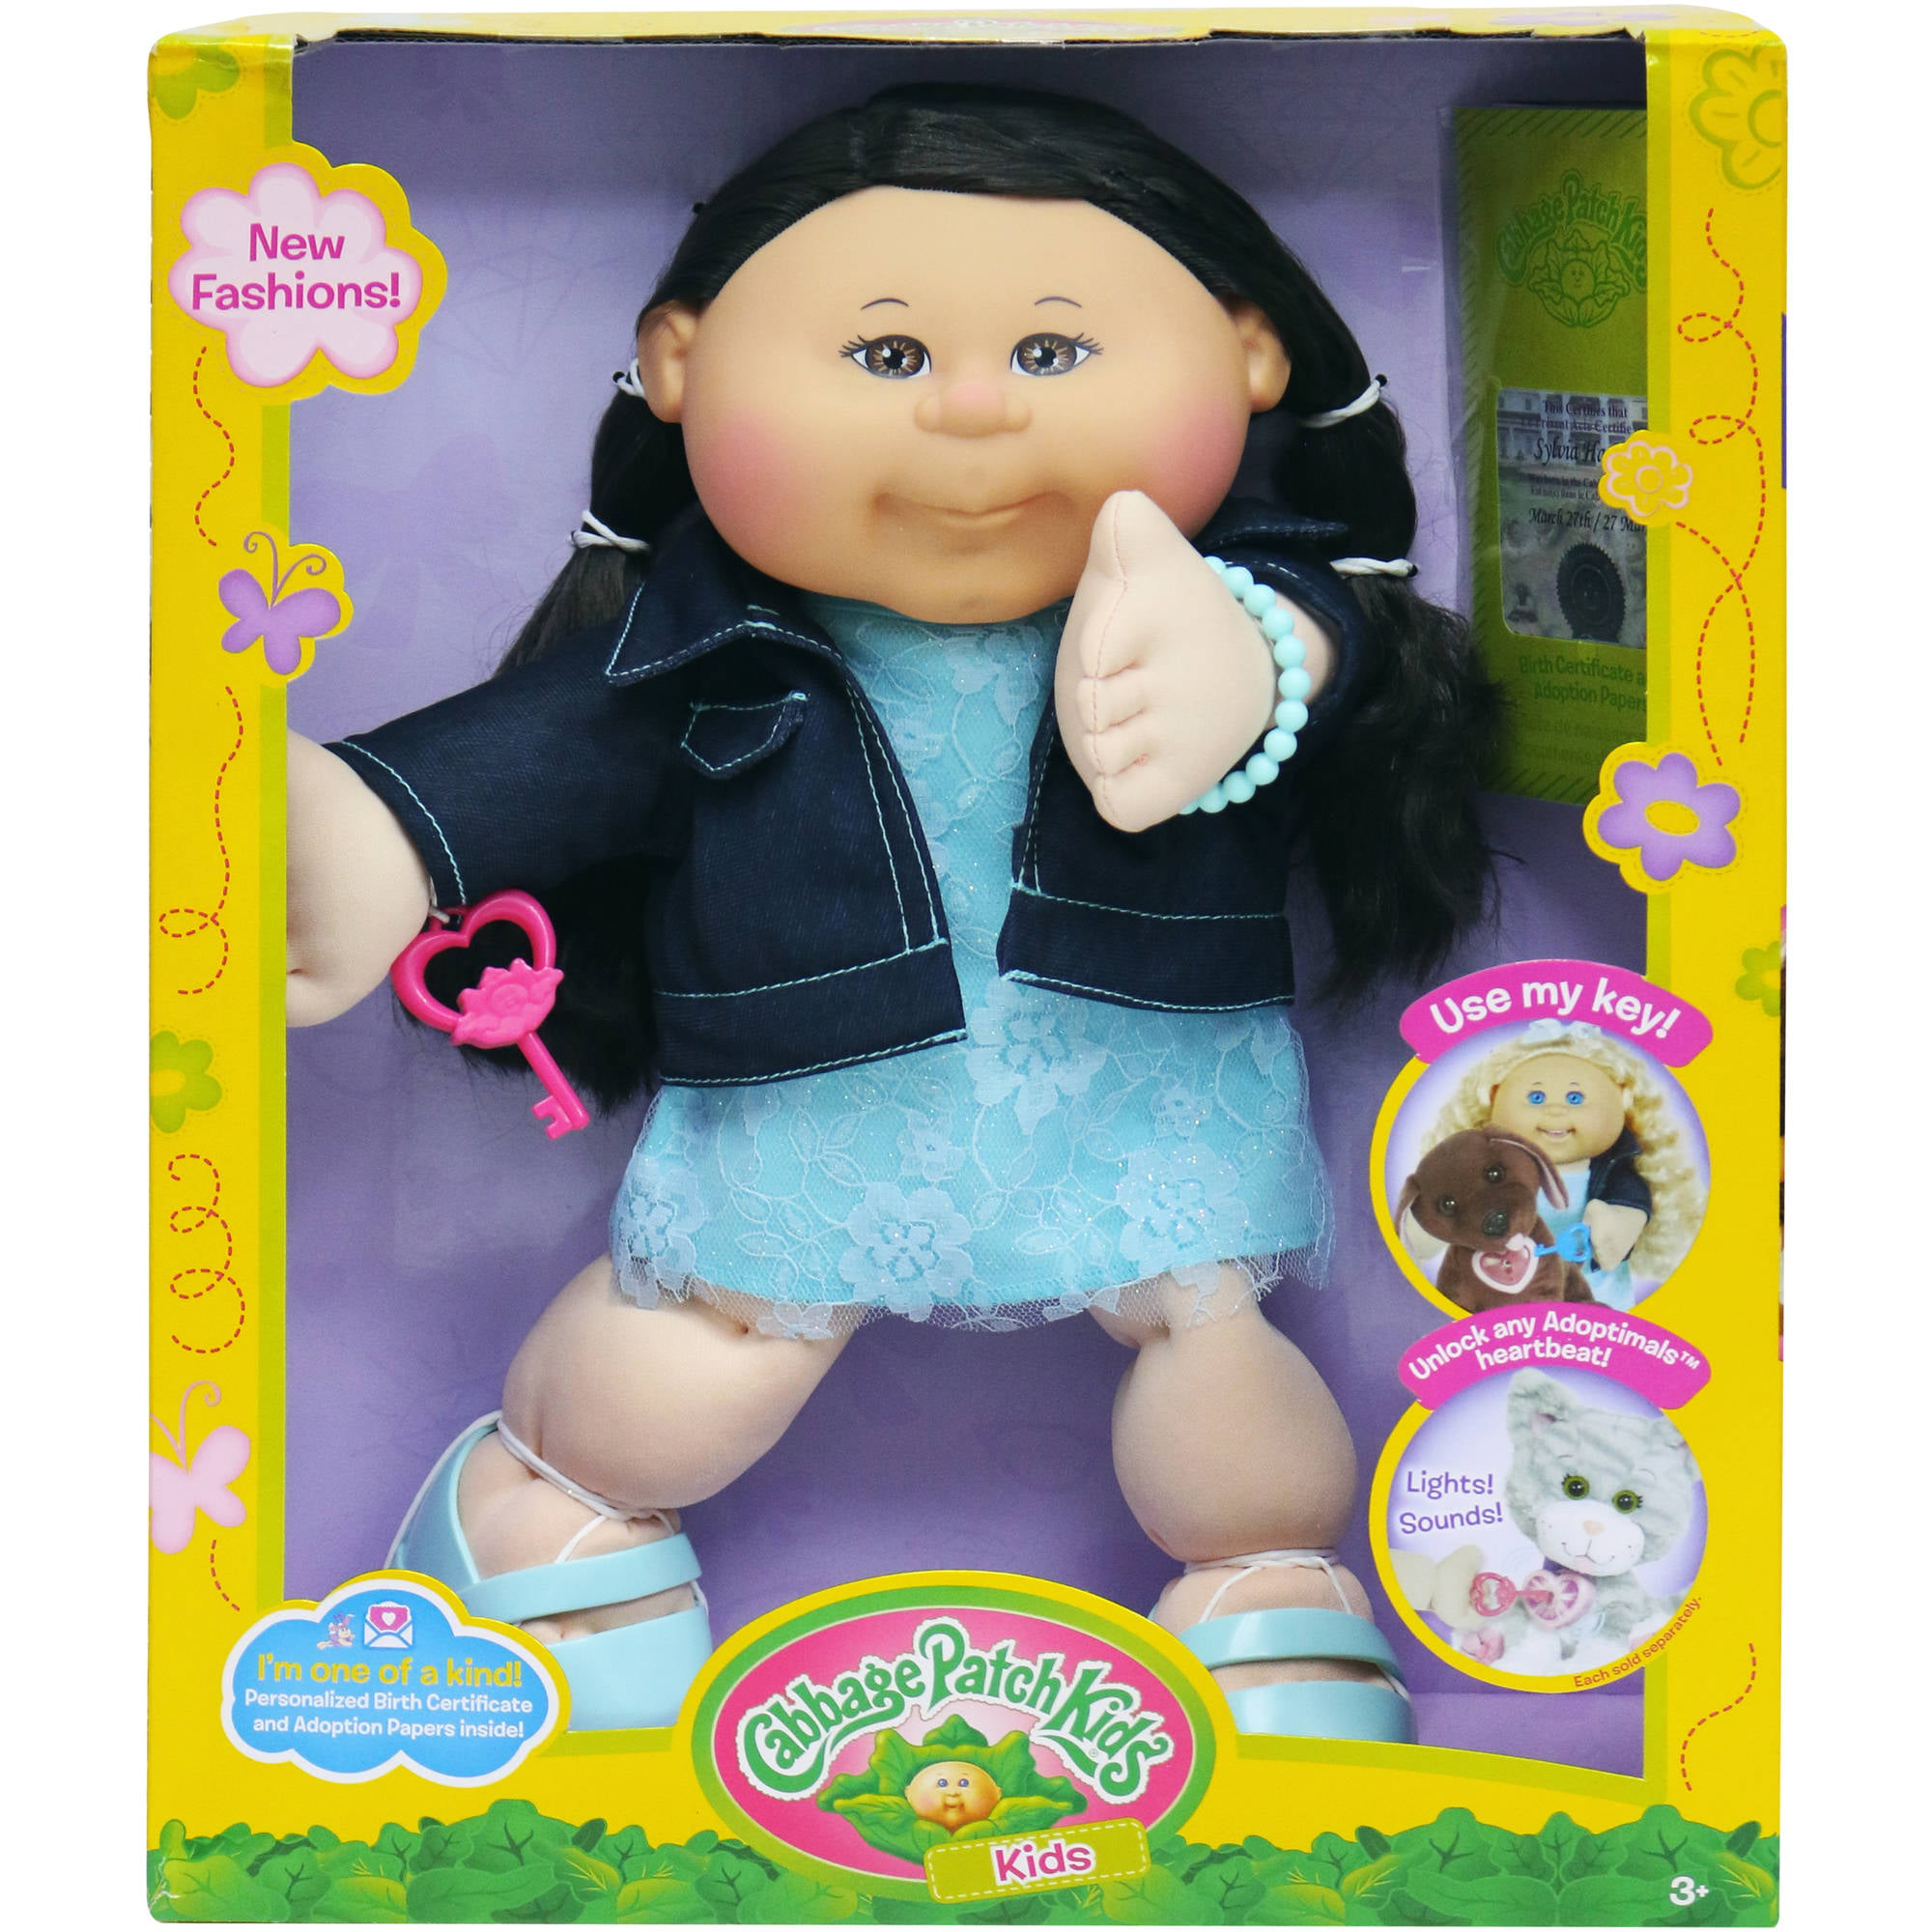 cabbage patch kids trendy doll, dark hair/brown eye girl - walmart